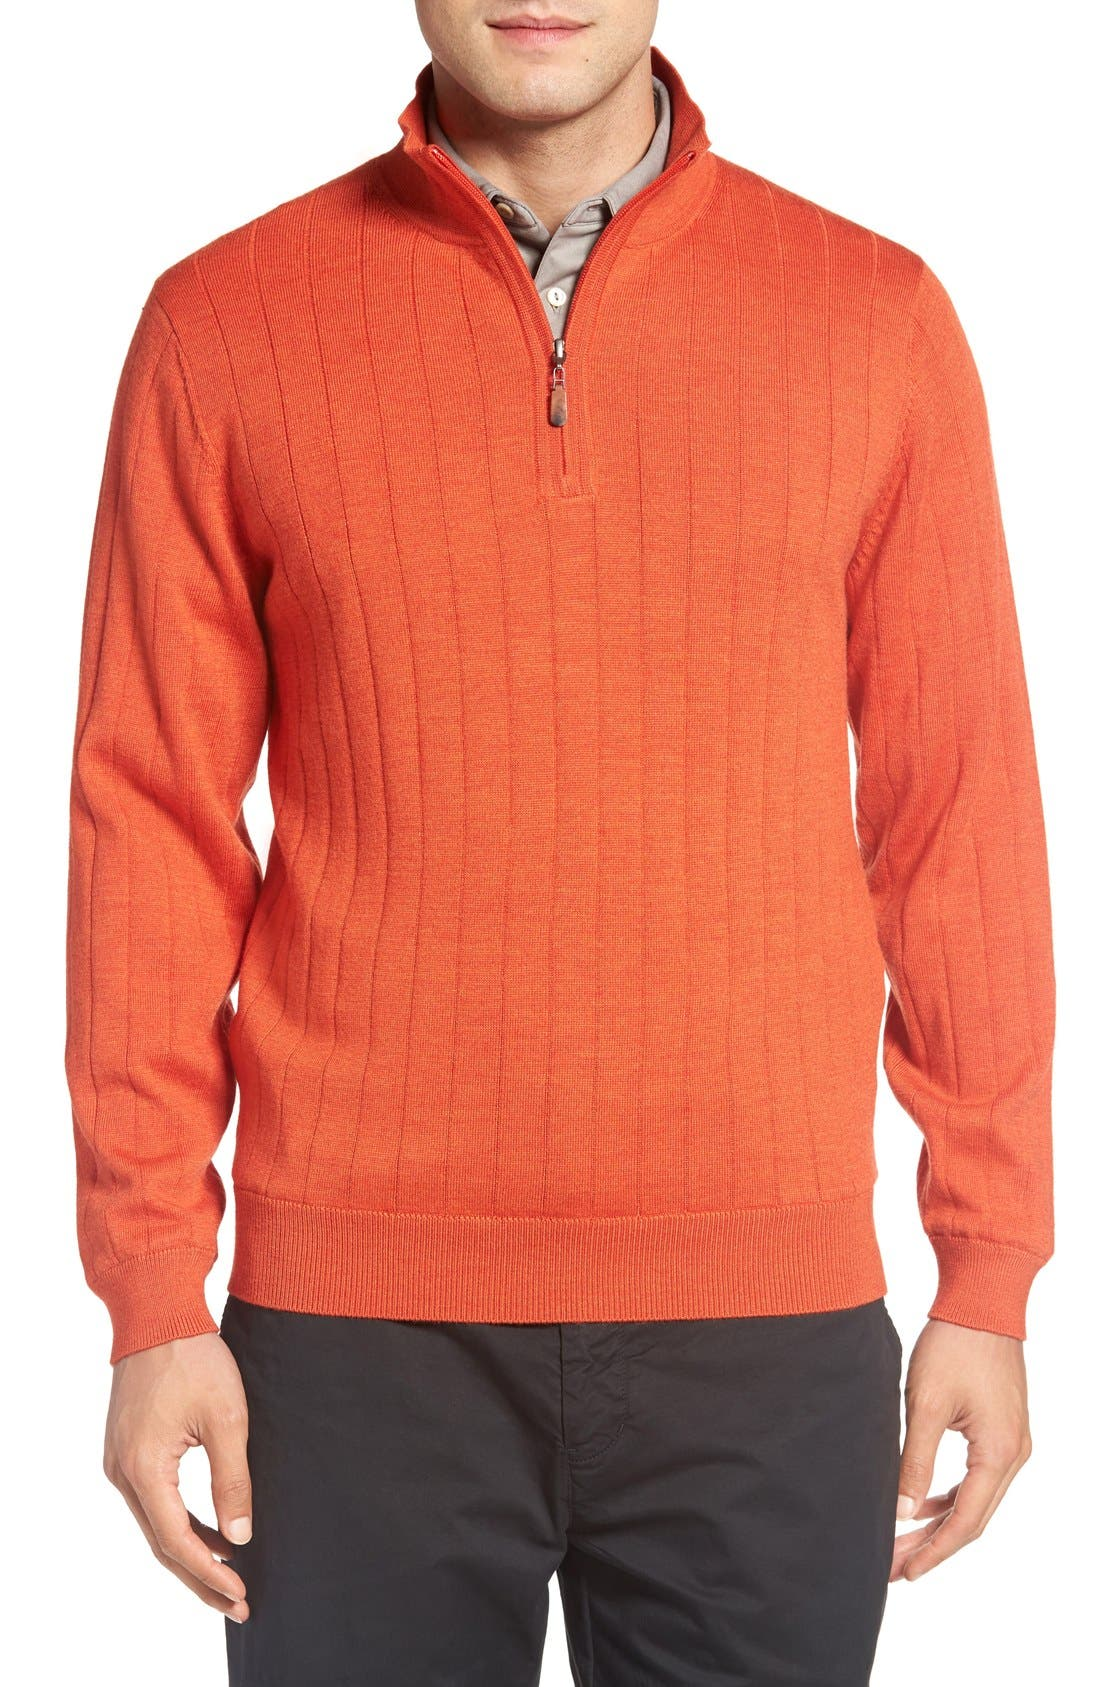 Alternate Image 1 Selected - Bobby Jones Windproof Merino Wool Quarter Zip Sweater